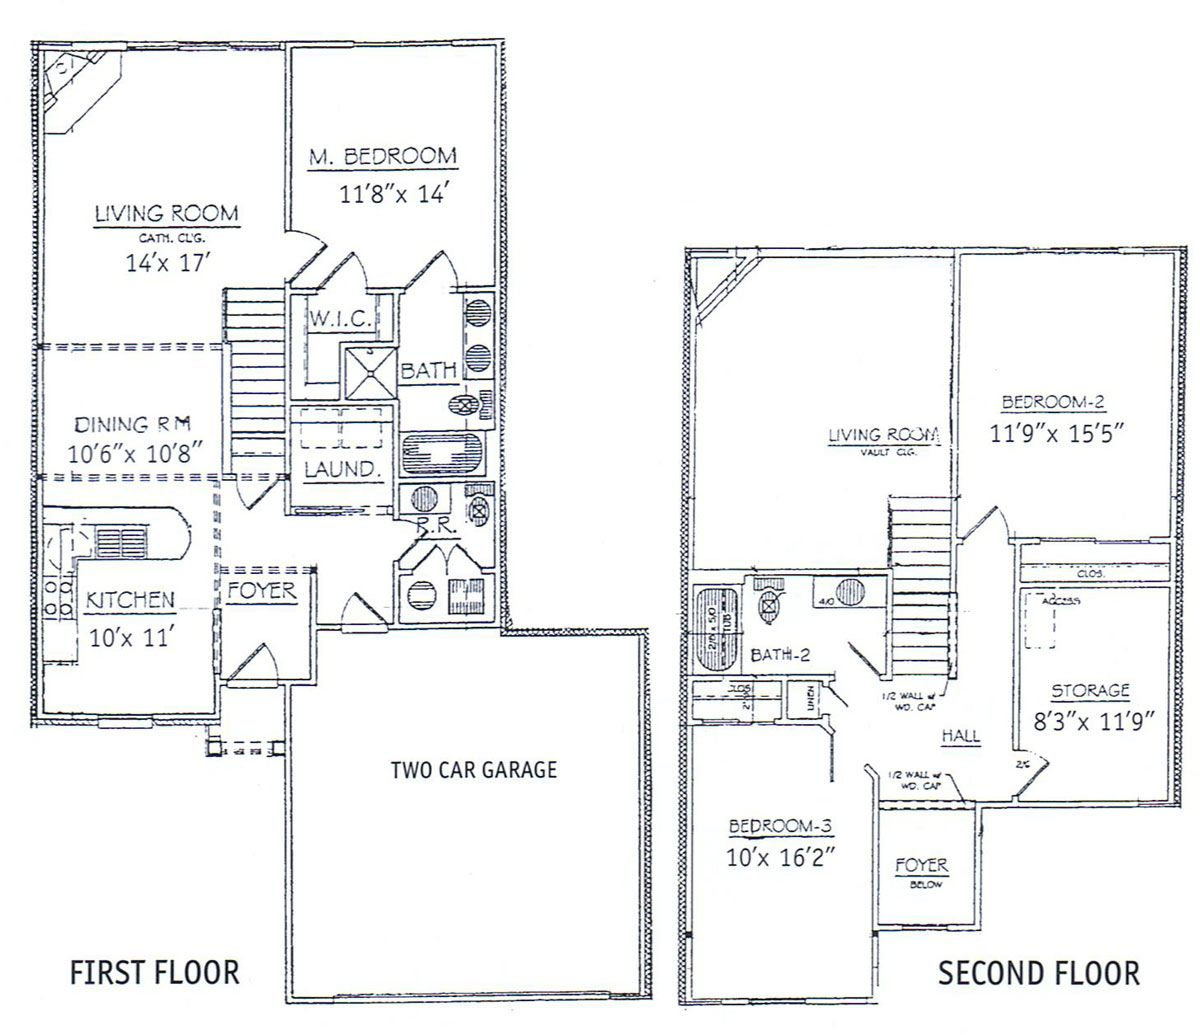 3 bedrooms floor plans 2 story bdrm basement the two for 2 story villa floor plans